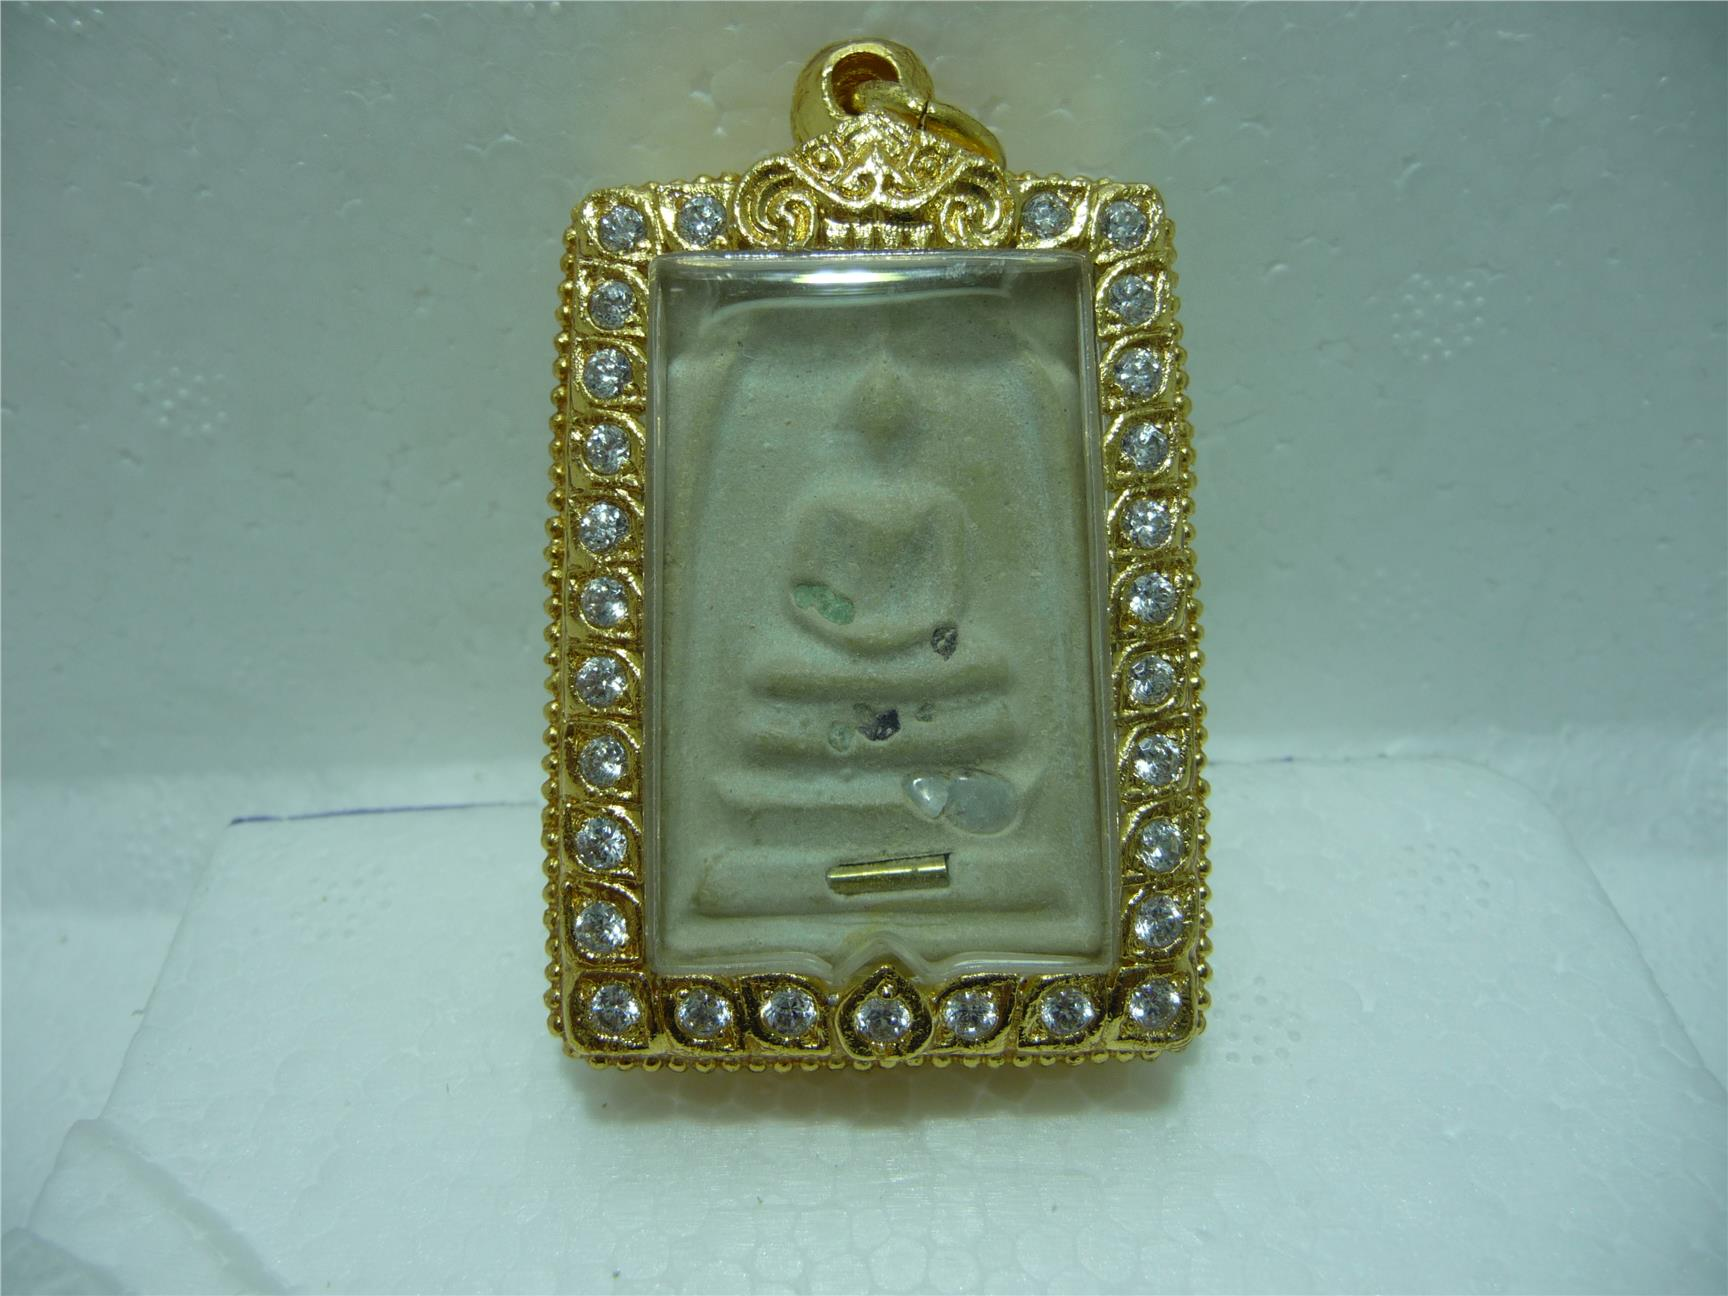 Somdej with Sarira, Monk of King thai amulet